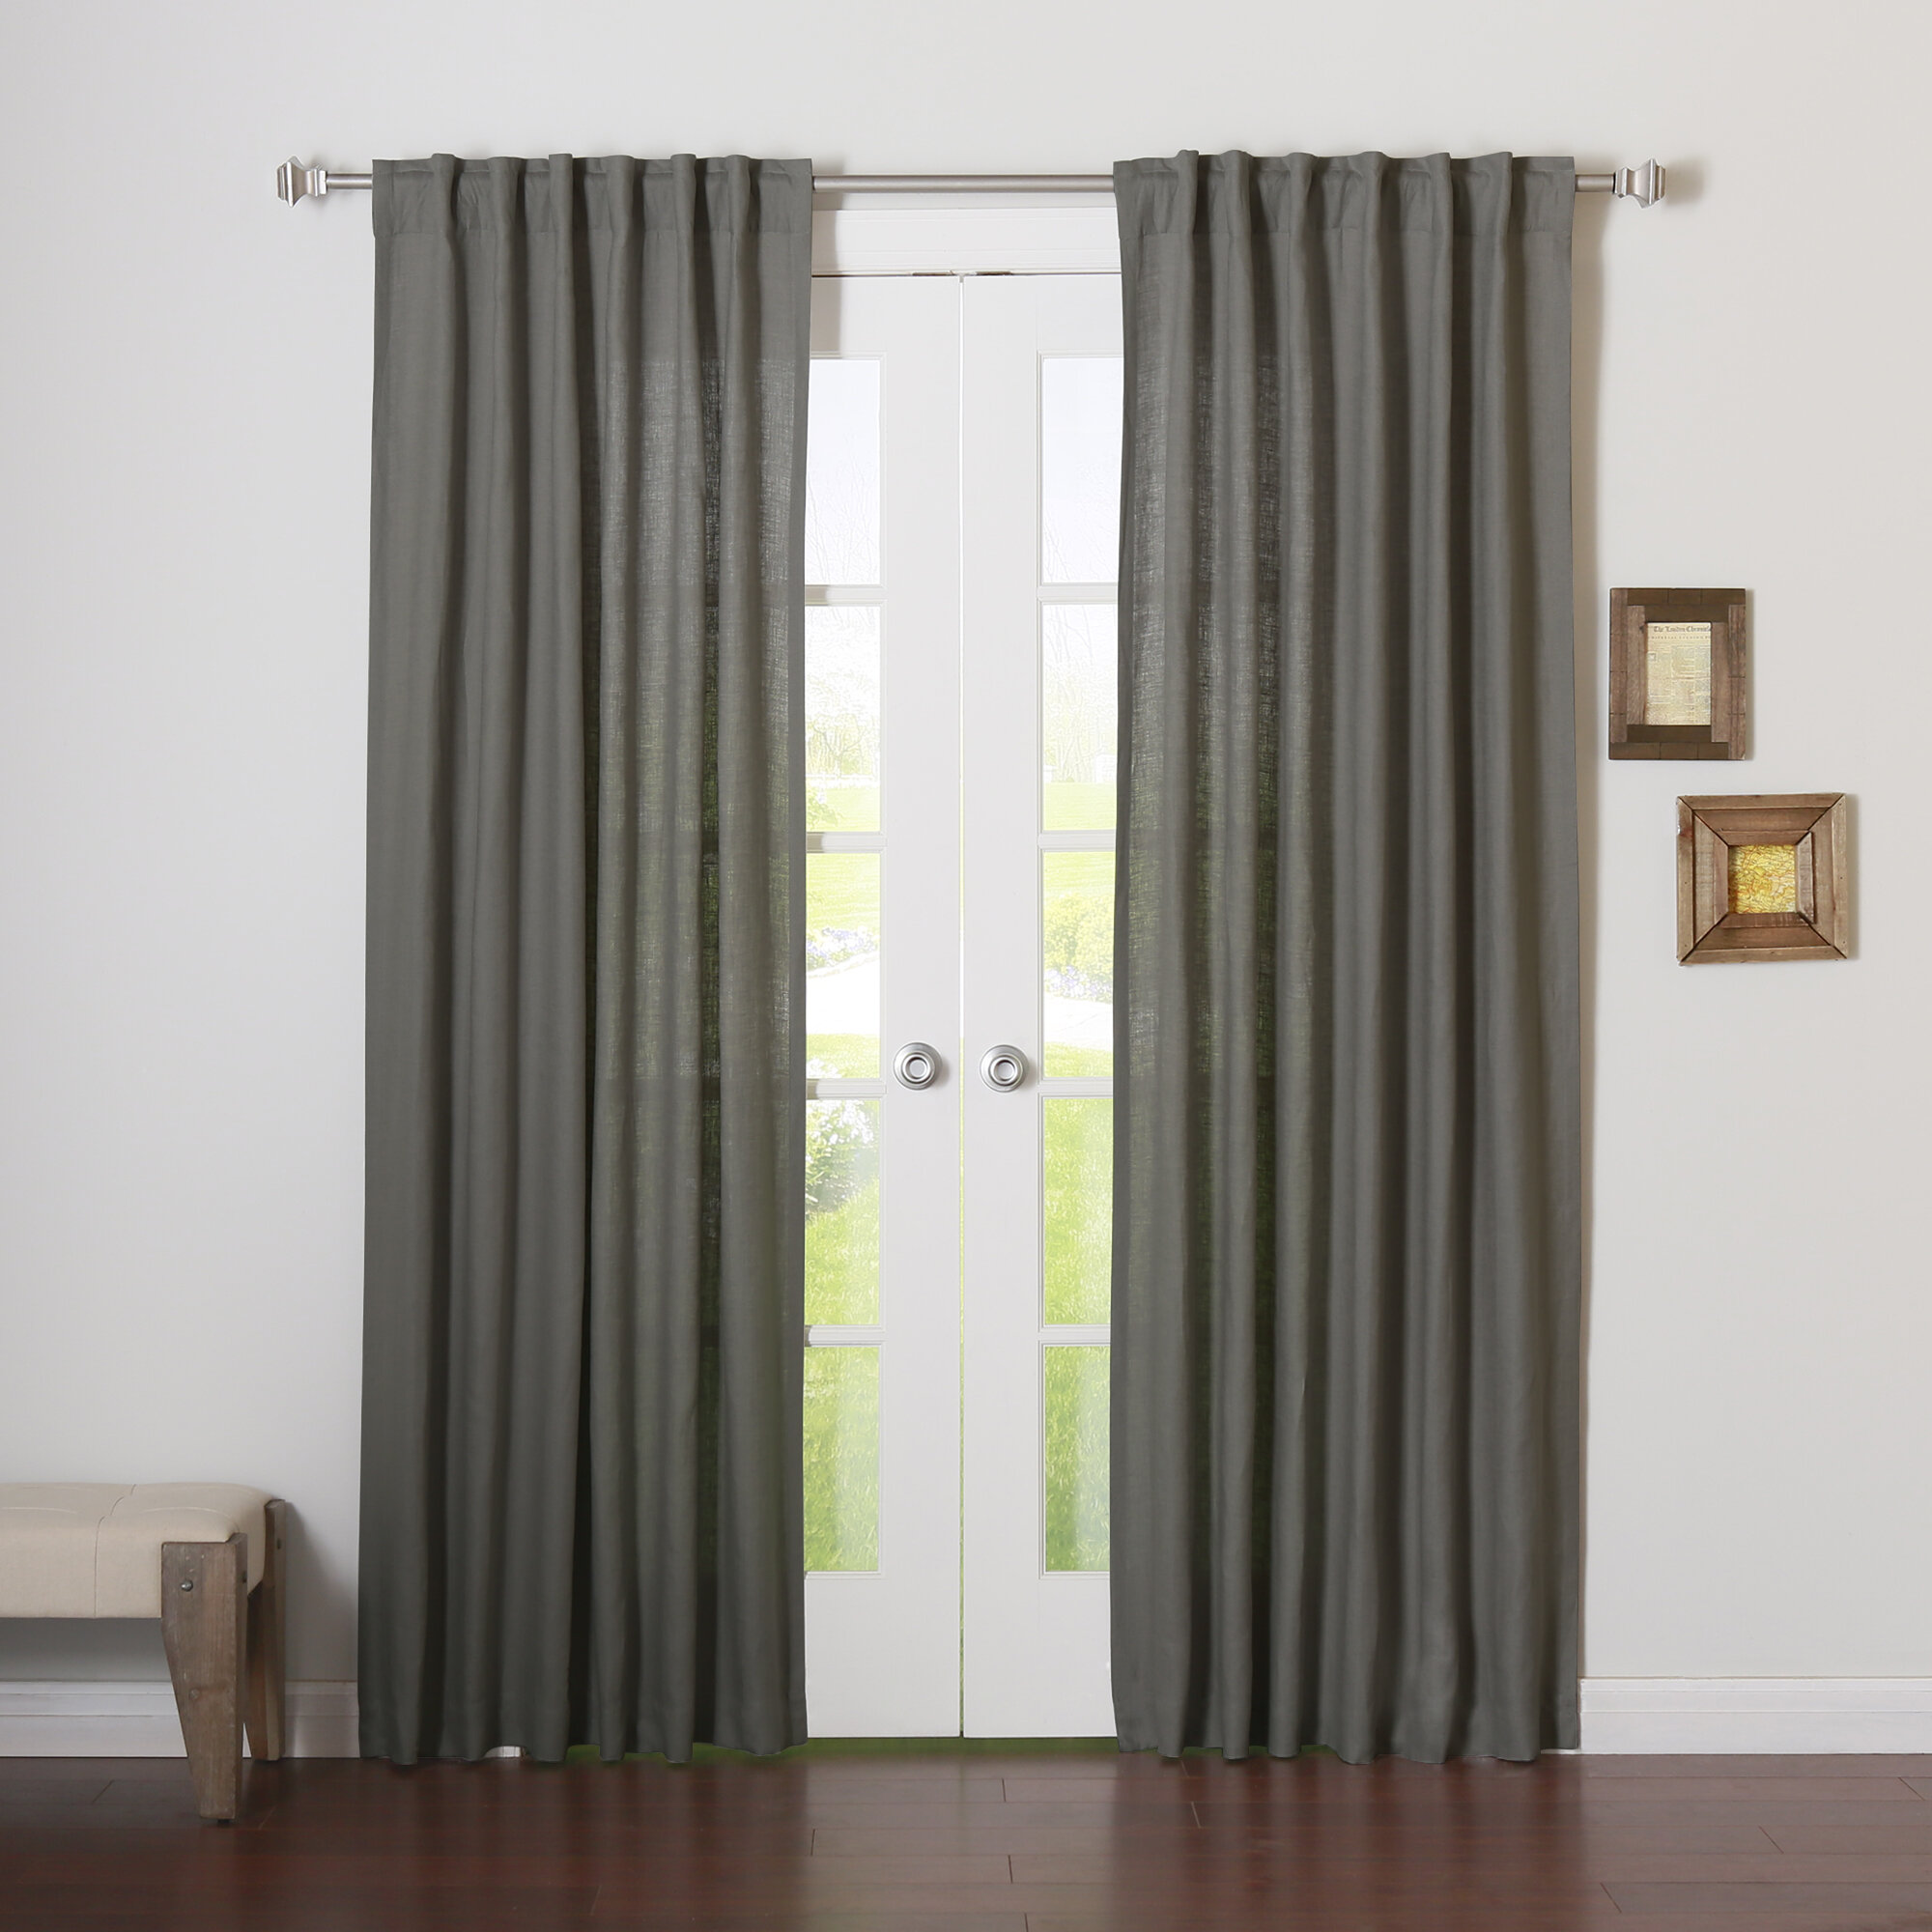 panel home heathered sunsmart product blackout curtains free on linen printed curtain garden arlie over orders overstock shipping